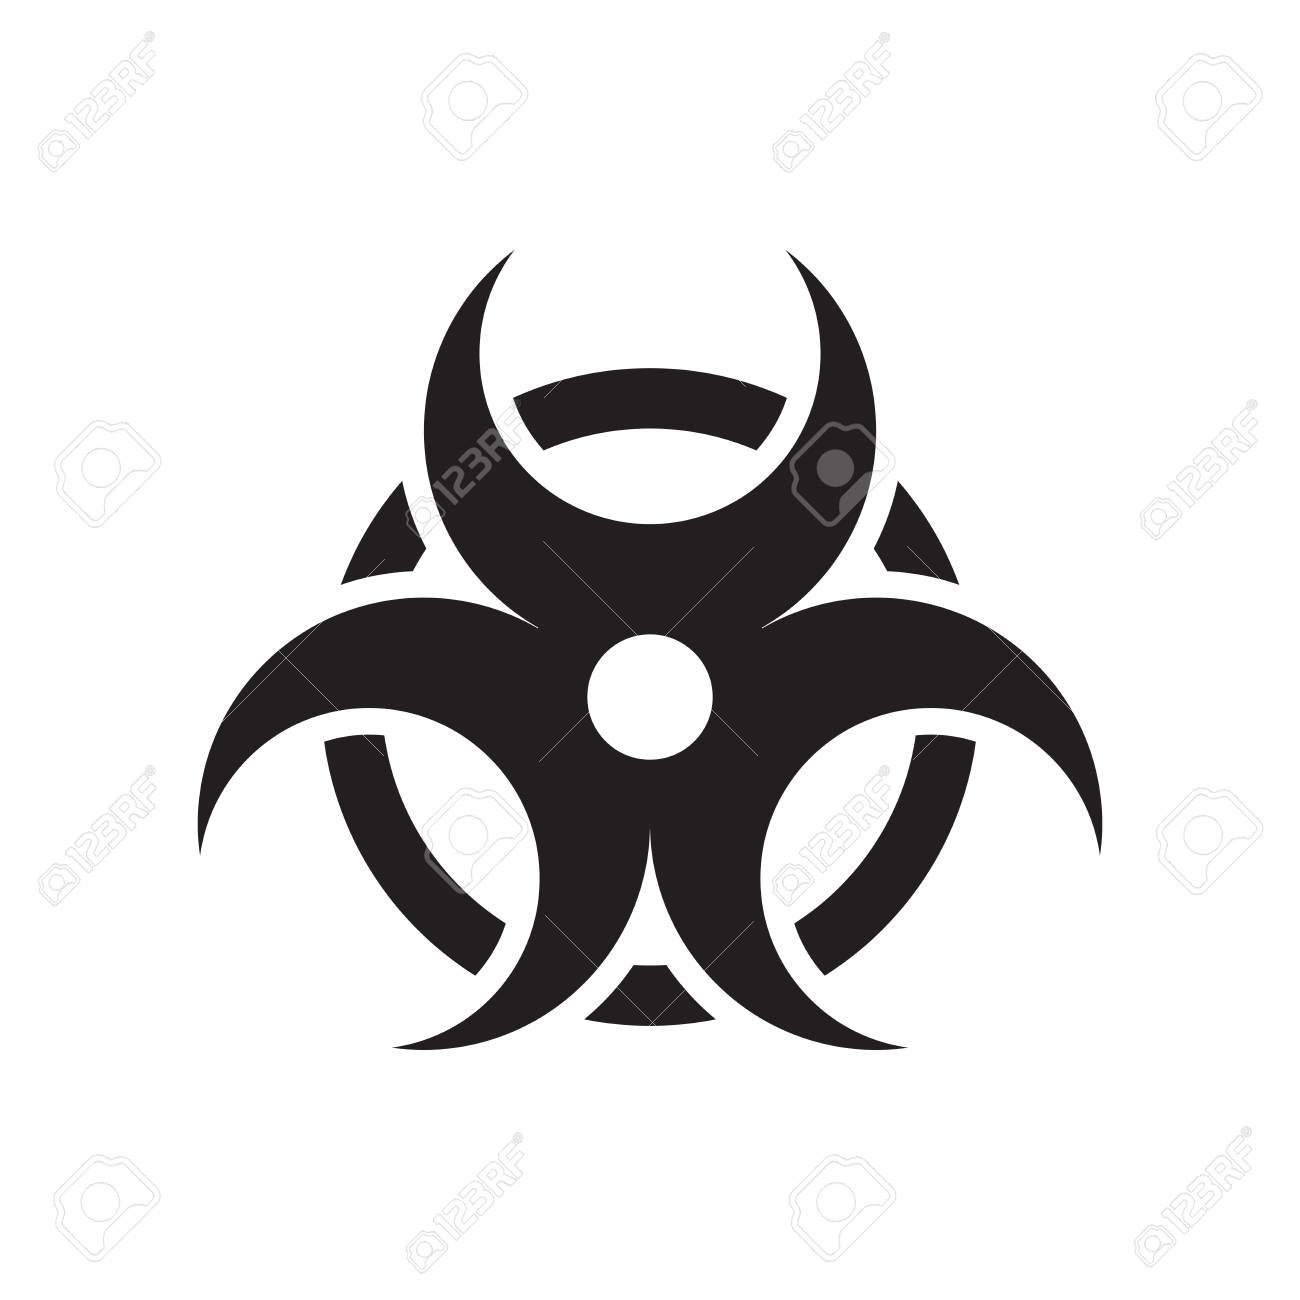 Cool Biohazard Logos Topsimages